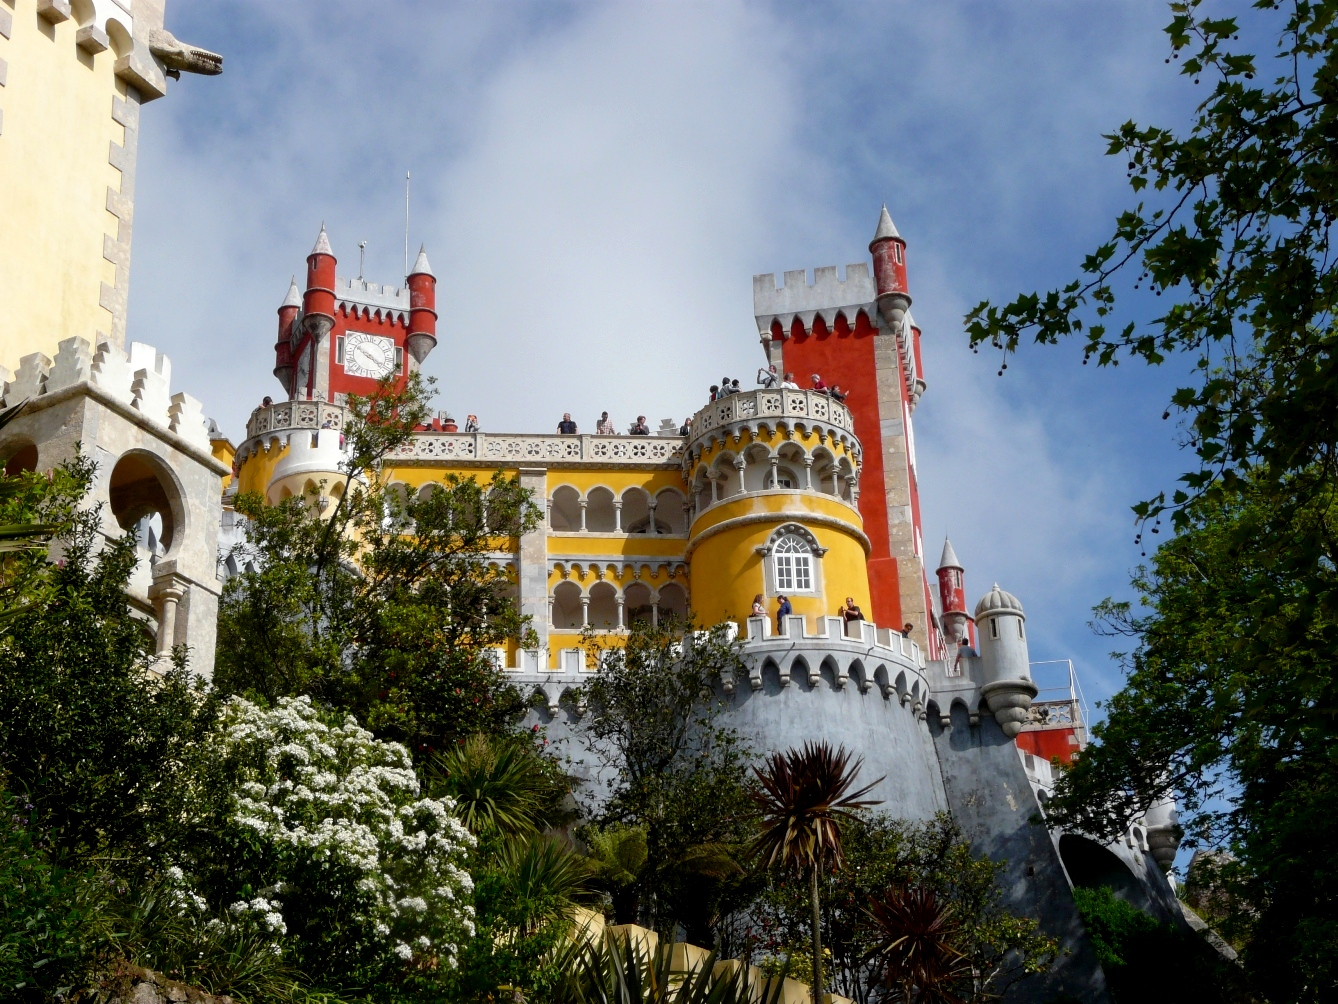 Picture 2, Pena Palace, Sintra, Portugal